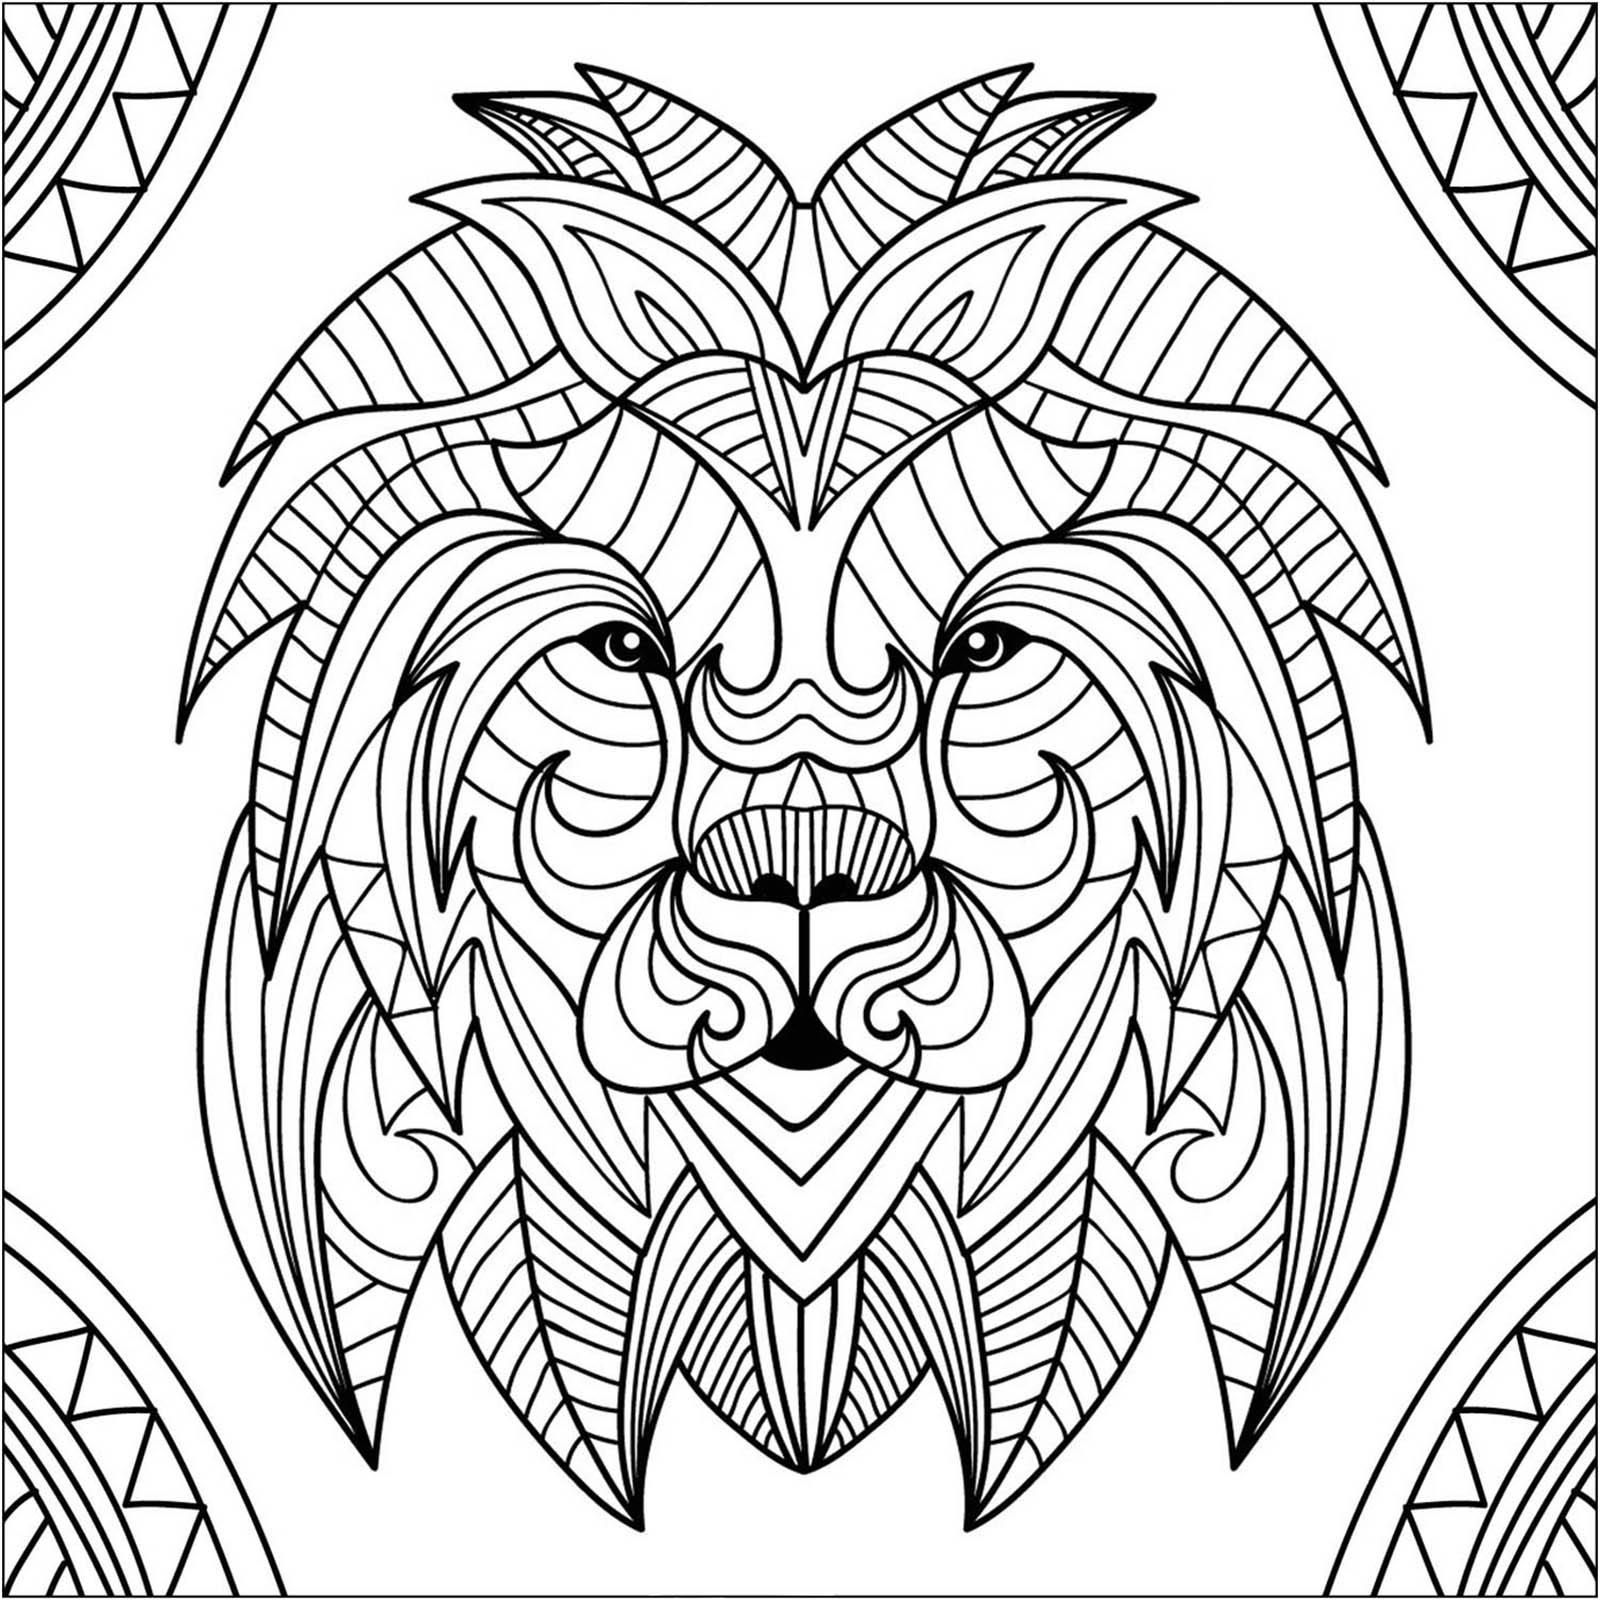 colour in lion lovely cartoon lion coloring page free printable colour in lion